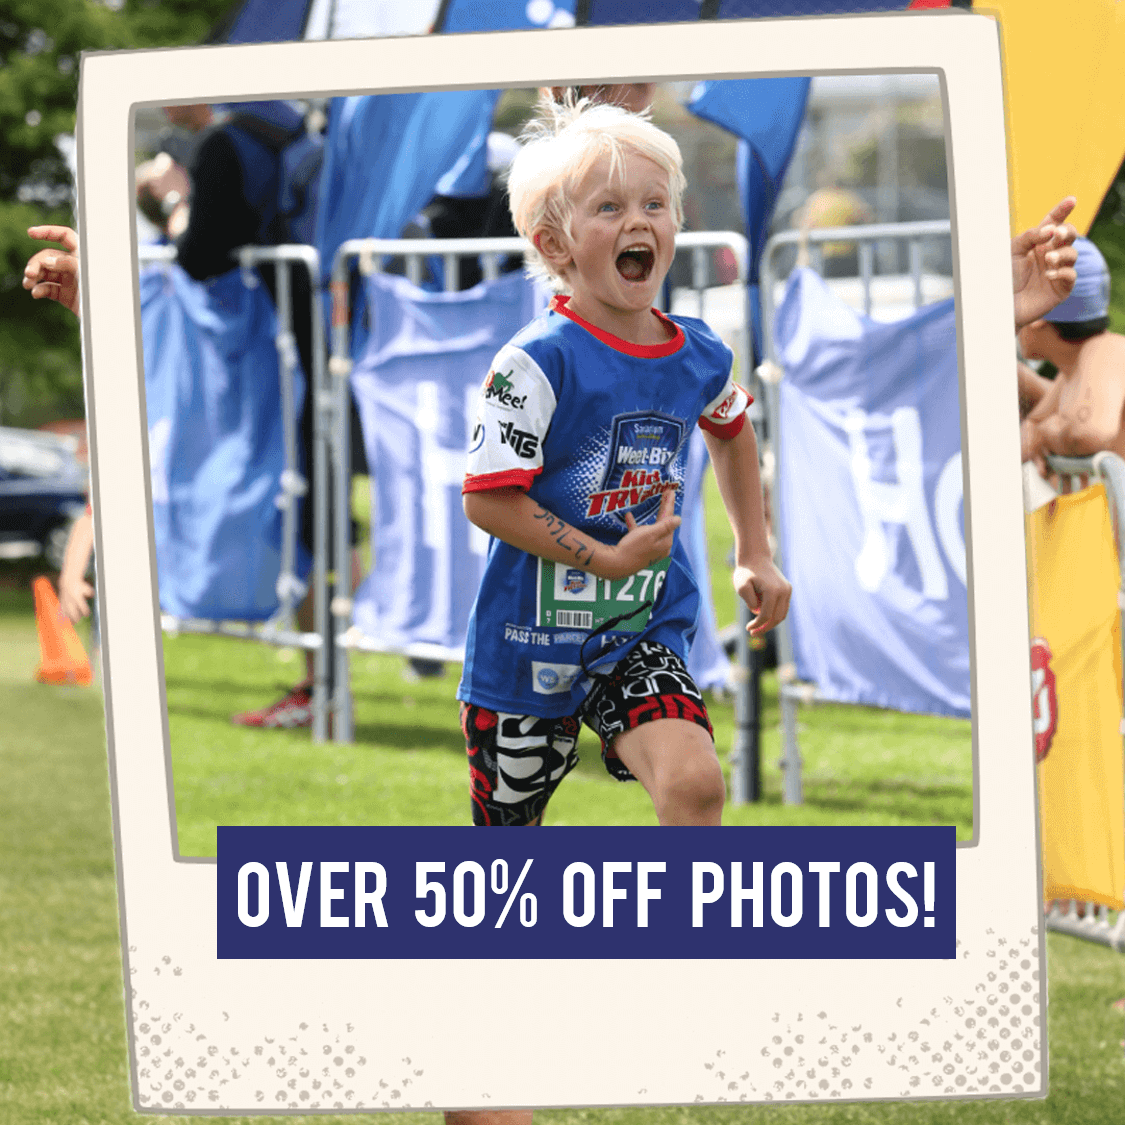 70% Off Photos